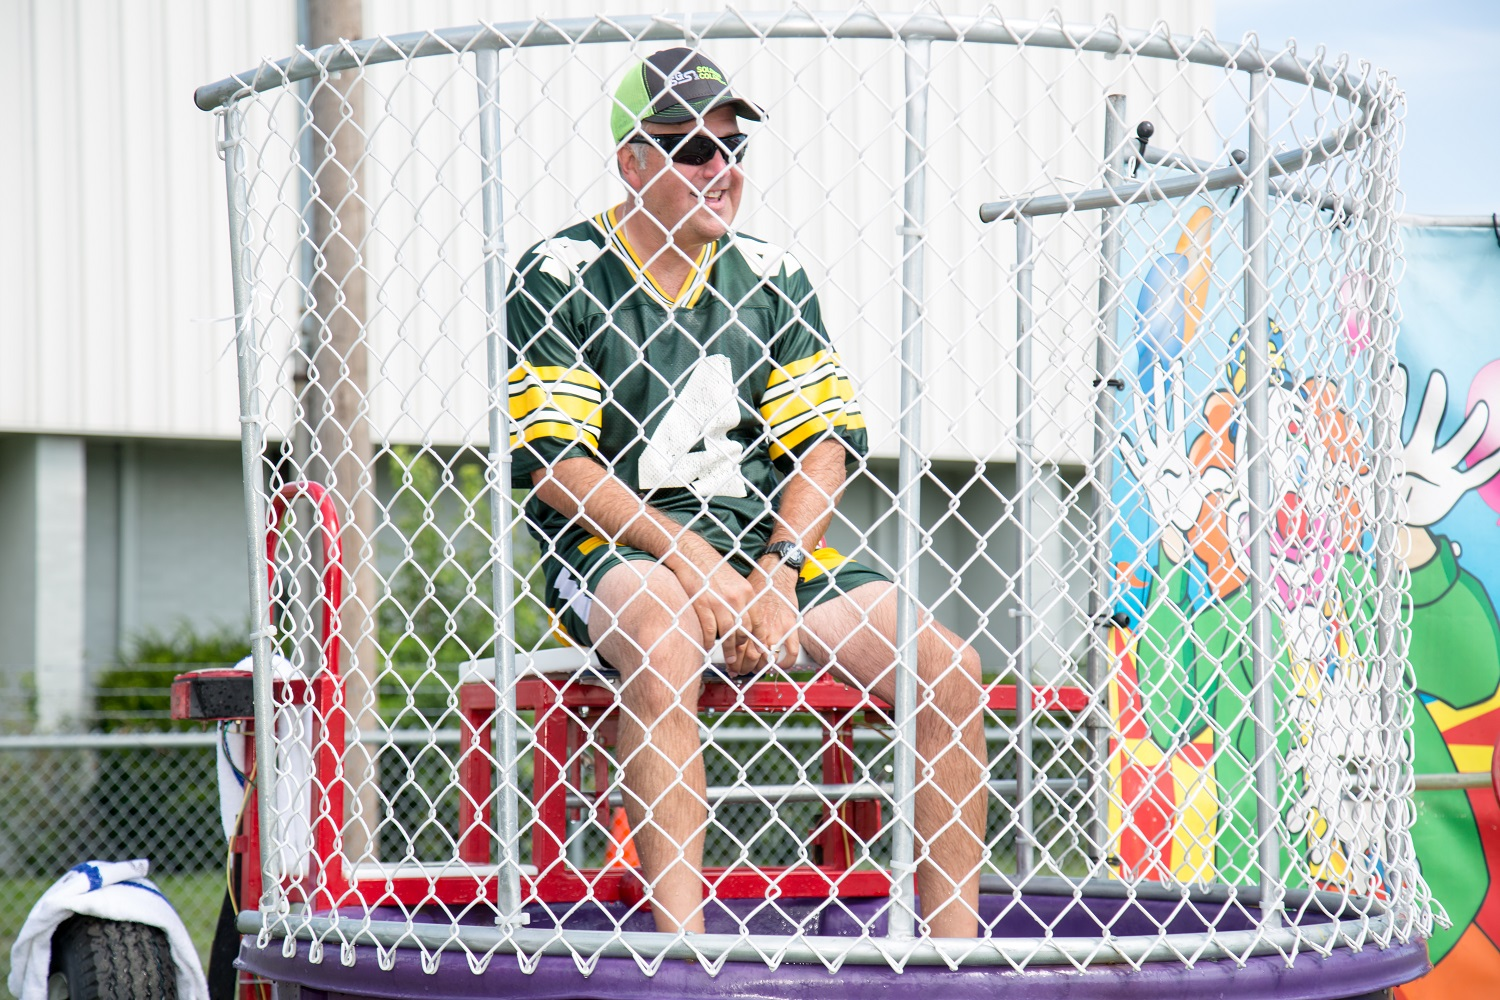 Solomon Colors Sales Manager Keith Nault (Upper Midwest & Dakotas) was one of many who took to the dunk tank to help raise money for Concrete Cares.